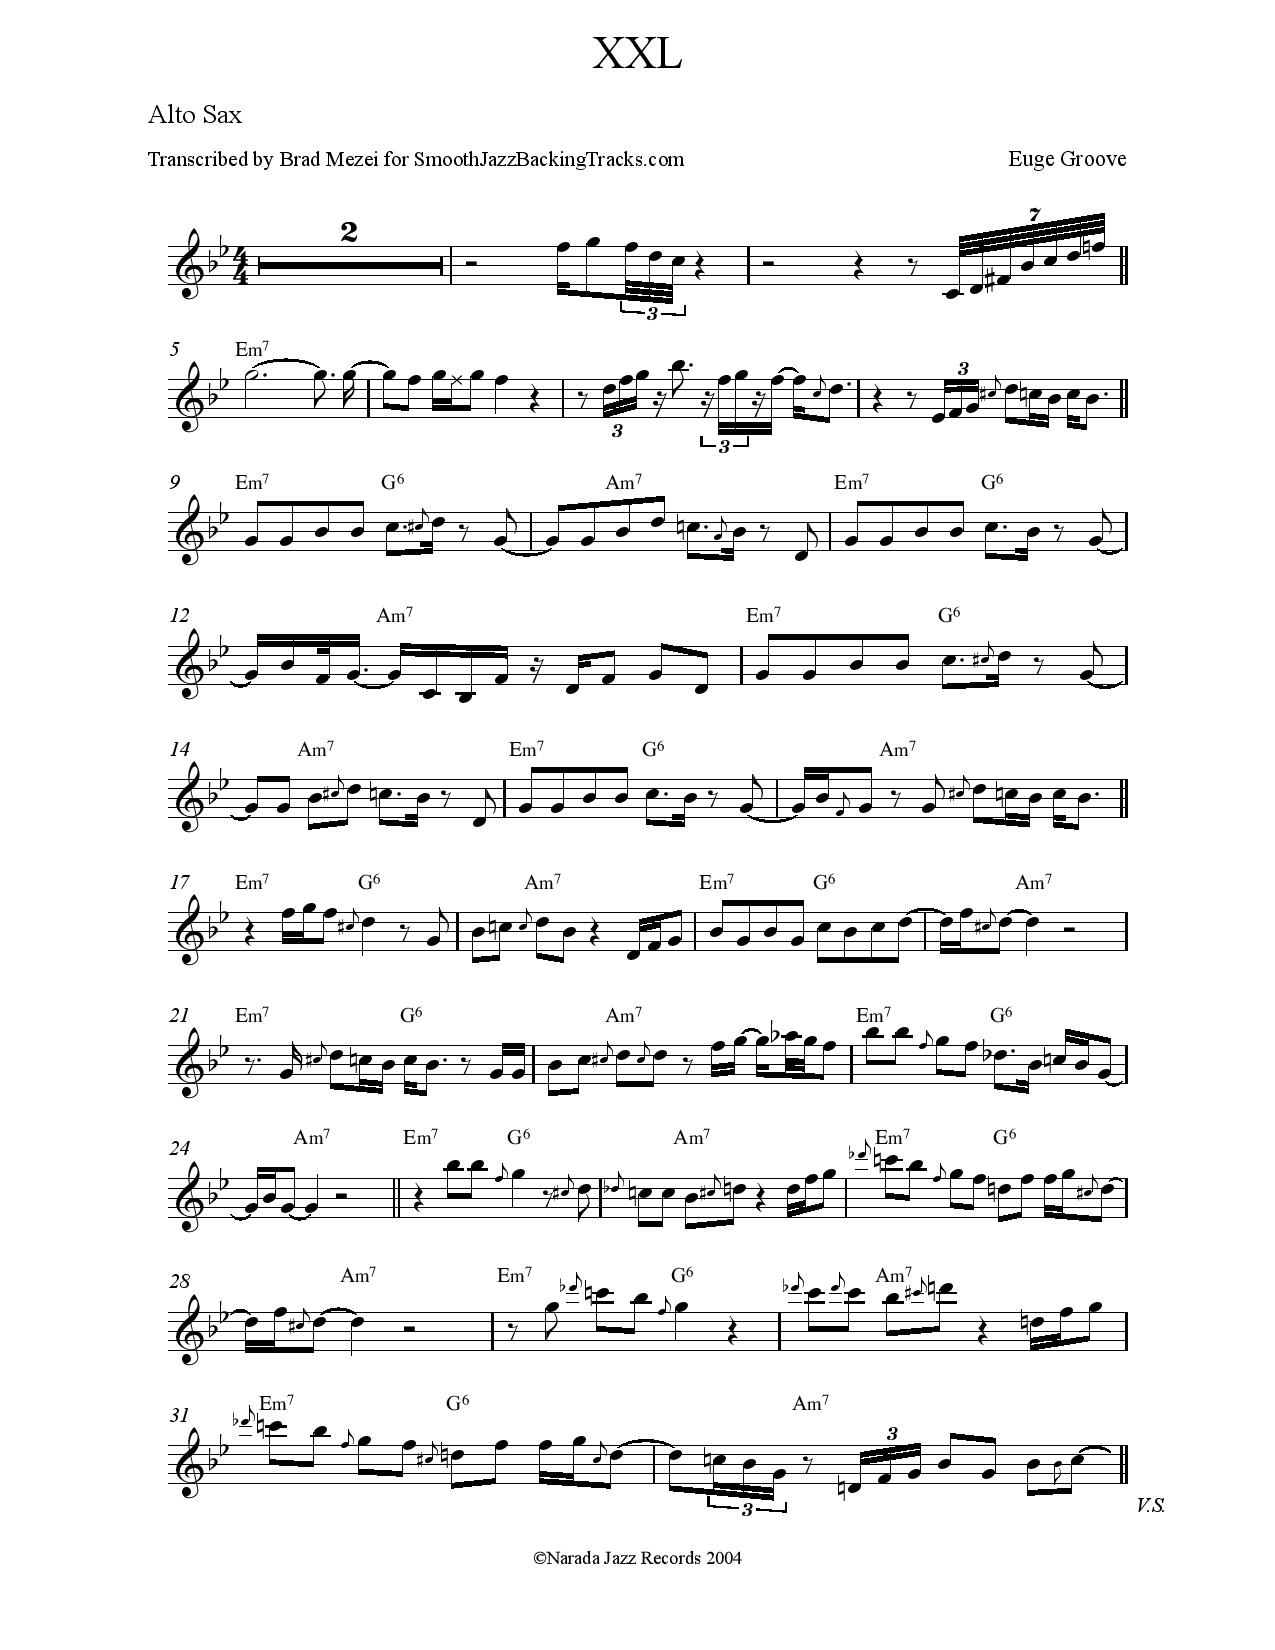 Smooth jazz sax solo sheet music e j lets stay together tenor sax chords included hexwebz Image collections